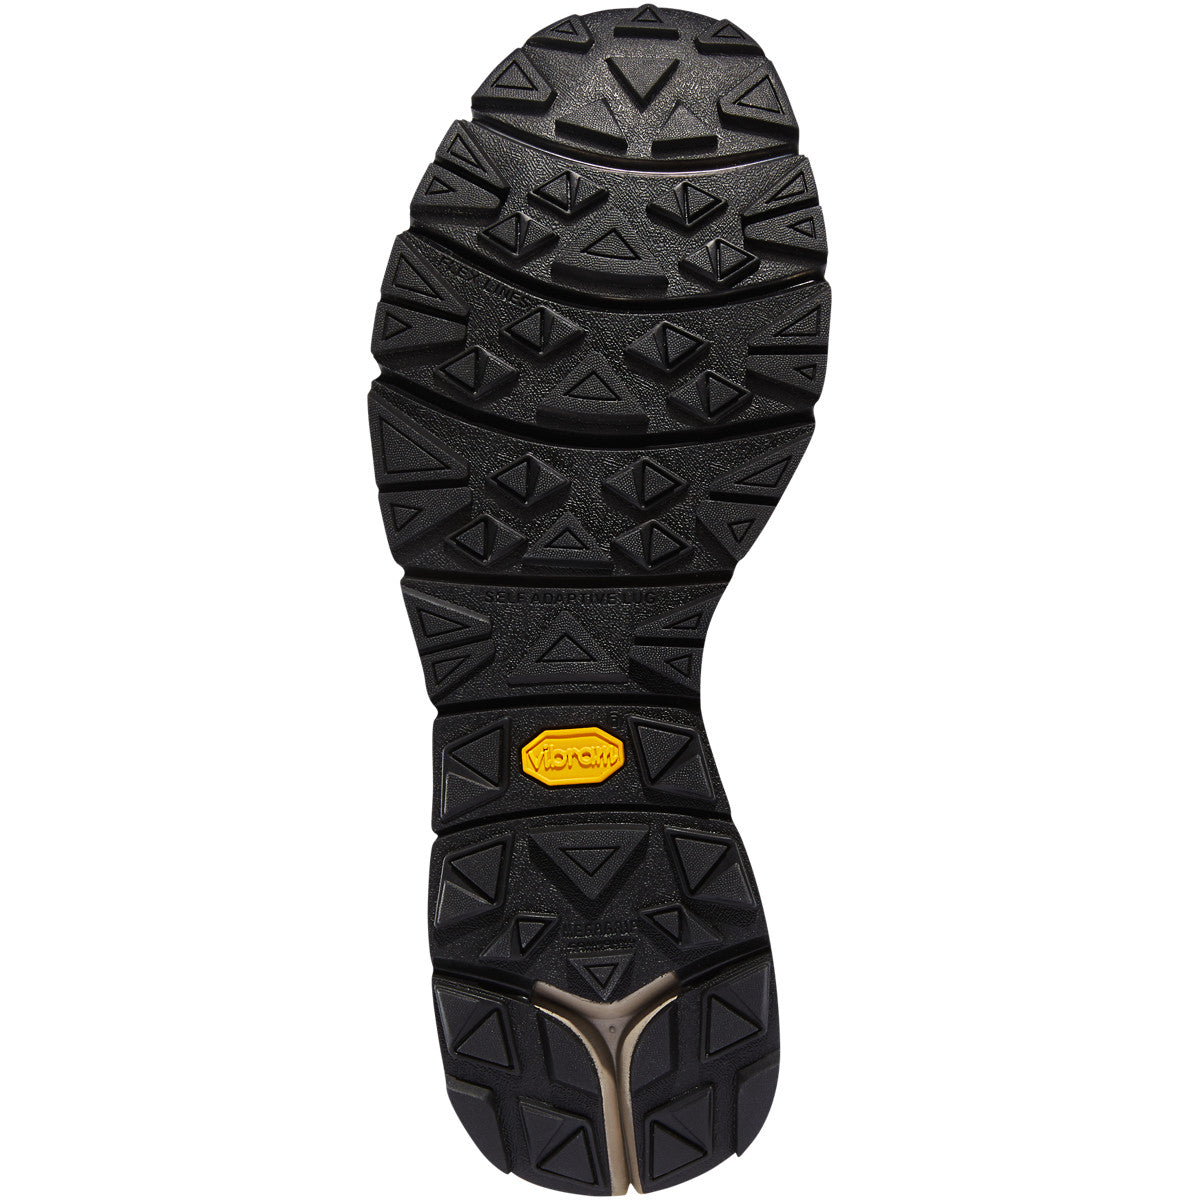 Danner South Rim 600 Shoe - 88 Gear